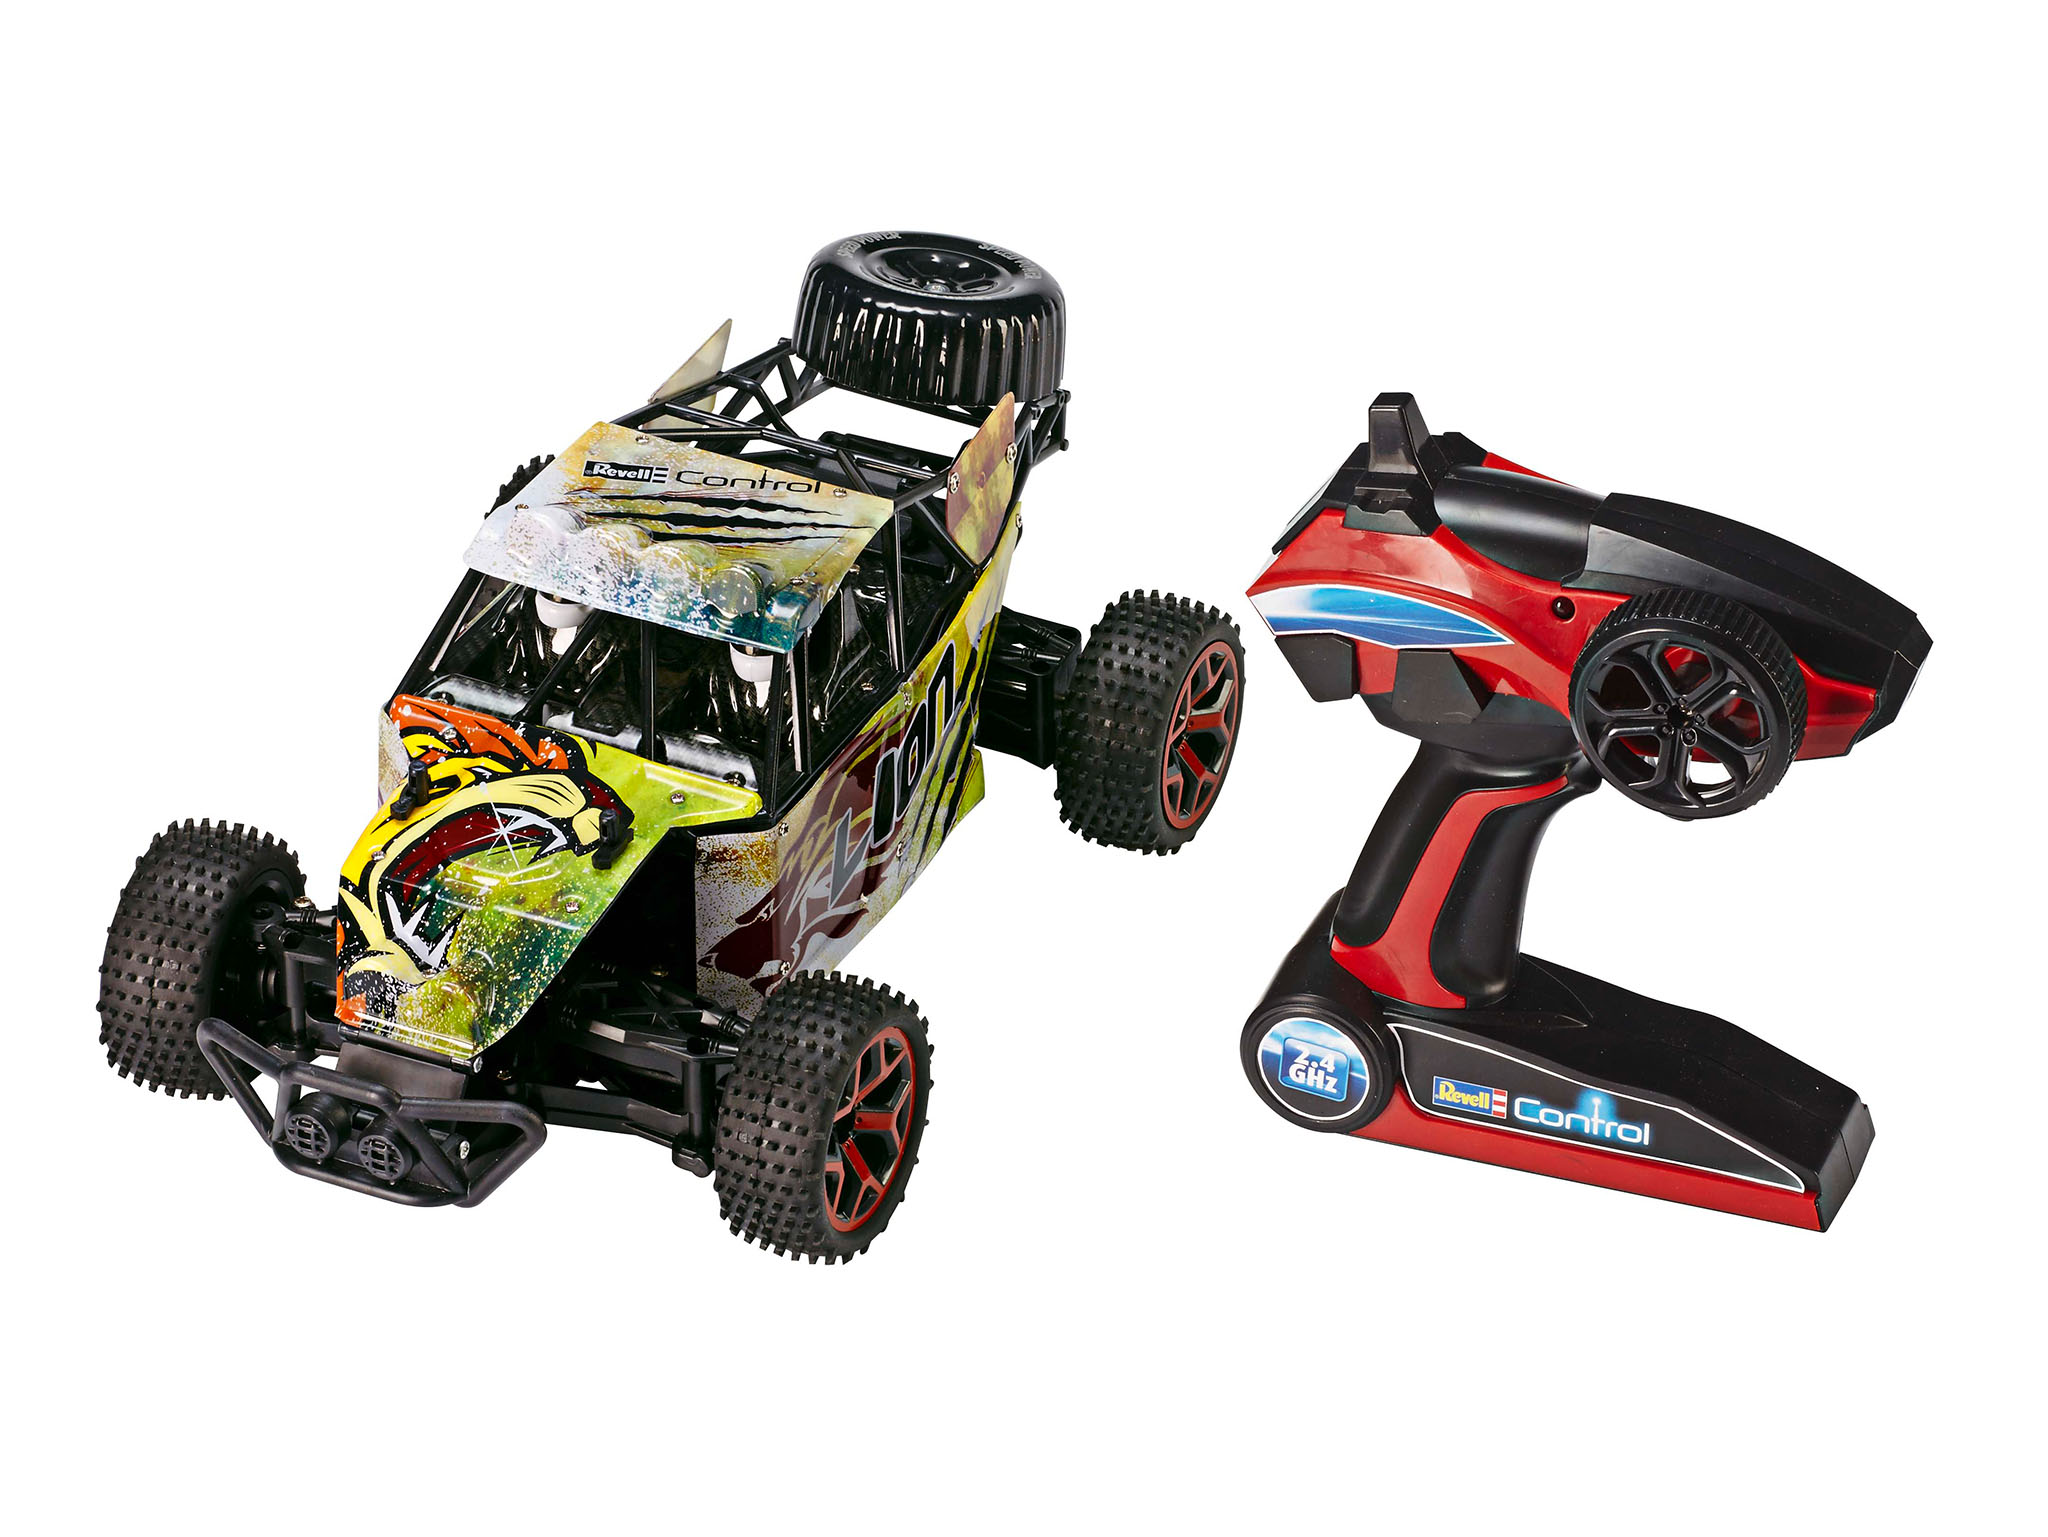 hobbyking rc cars with 4wd Accessories 4wd Accessories By Products Spare on Showthread furthermore Attachment furthermore Attachment further Watch besides Watch.